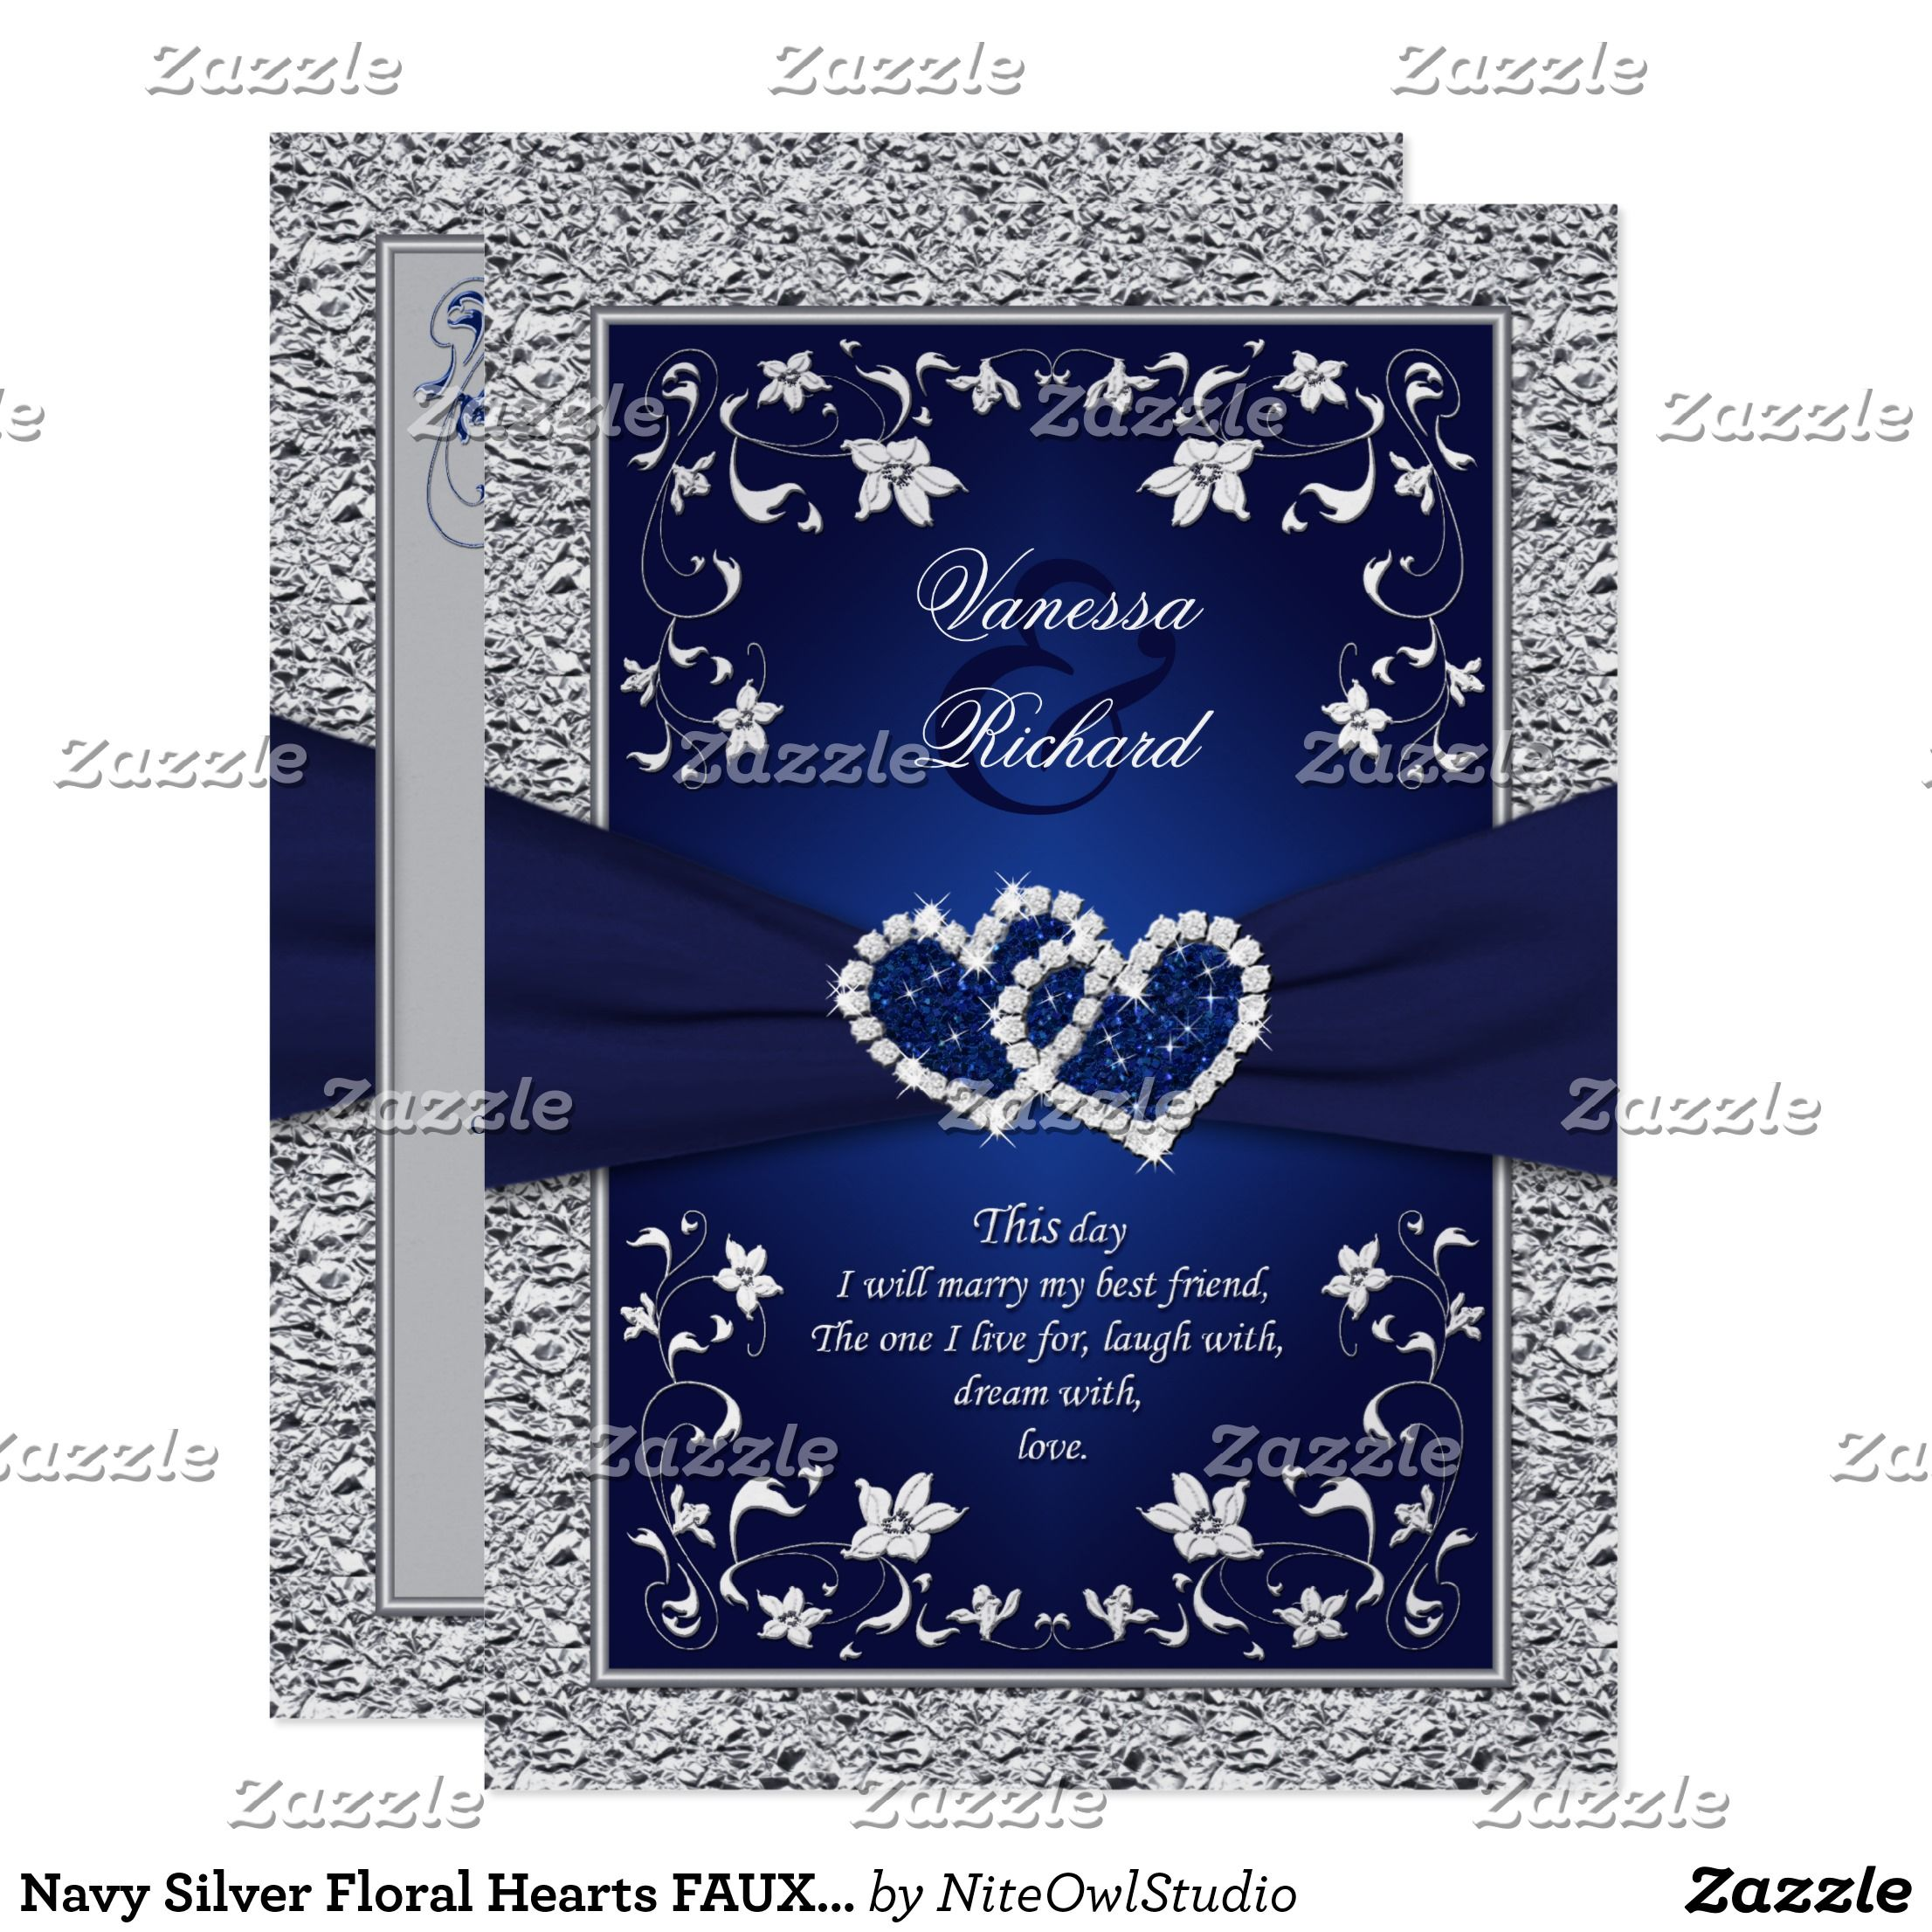 Navy Silver Floral Hearts Faux Foil Wedding Invite Royal Blue